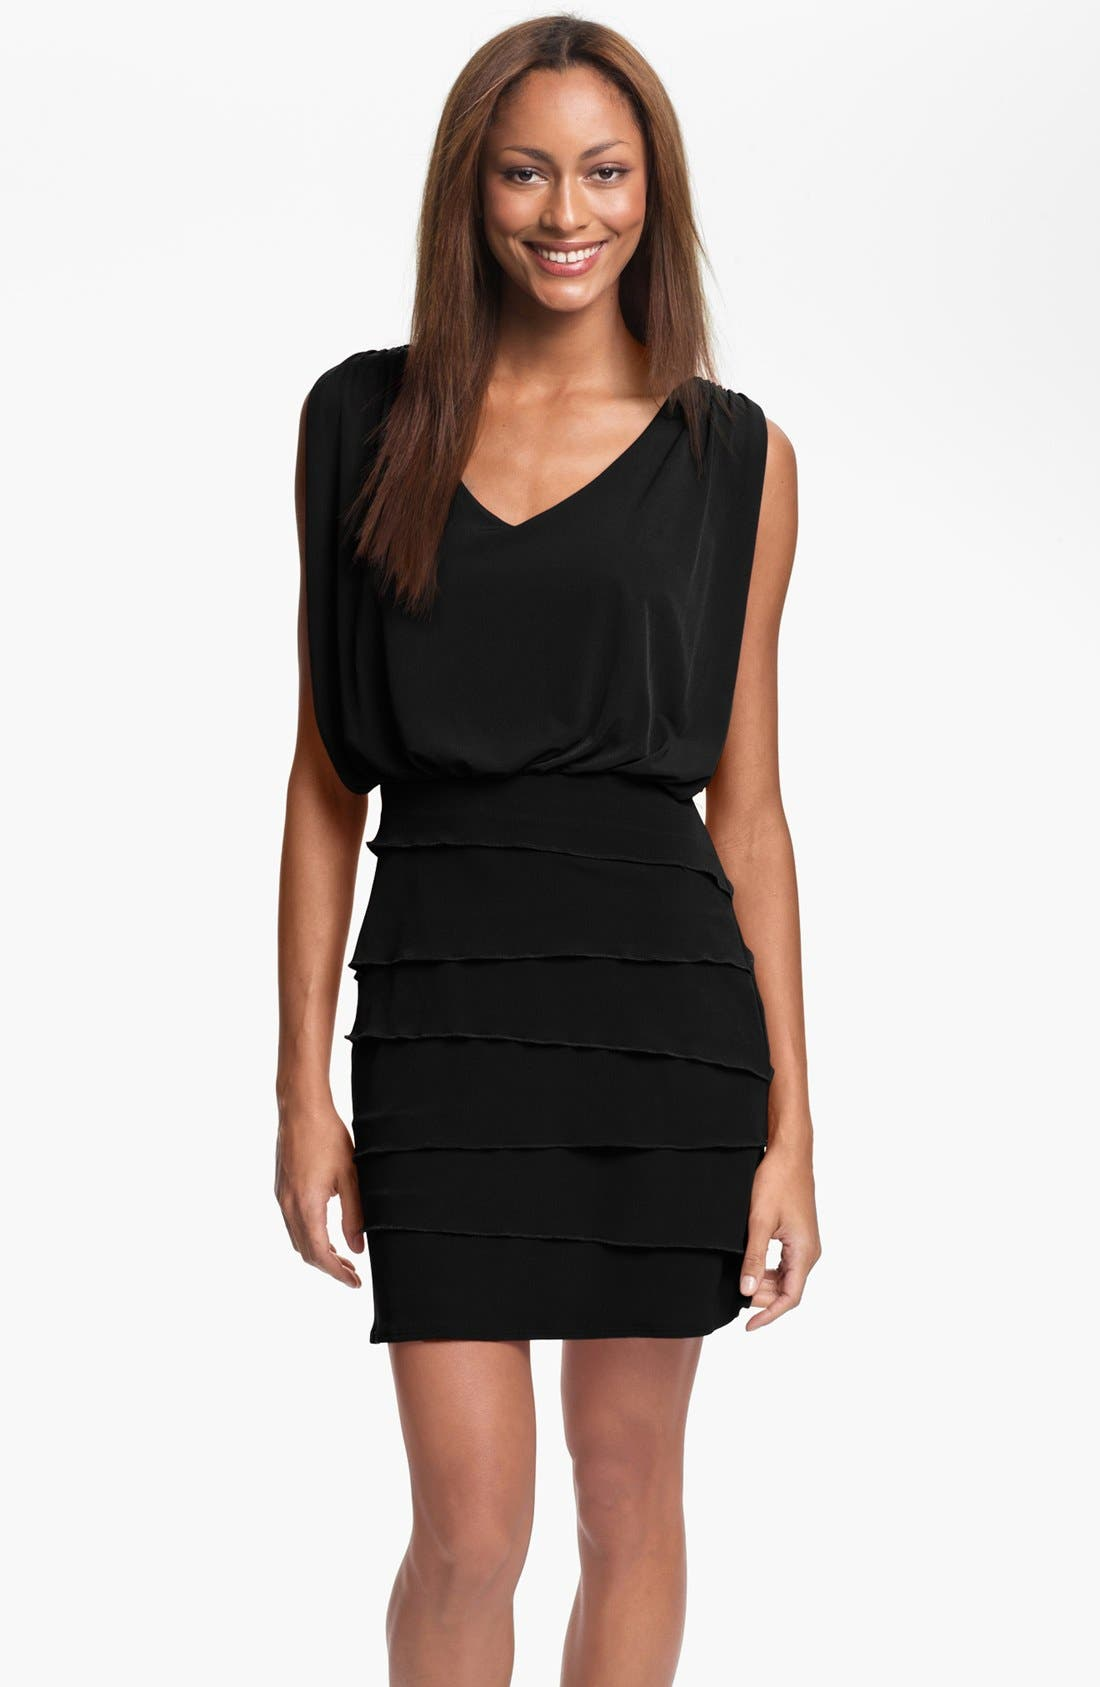 Alternate Image 1 Selected - Laundry by Shelli Segal Tiered Skirt Dress (Petite)